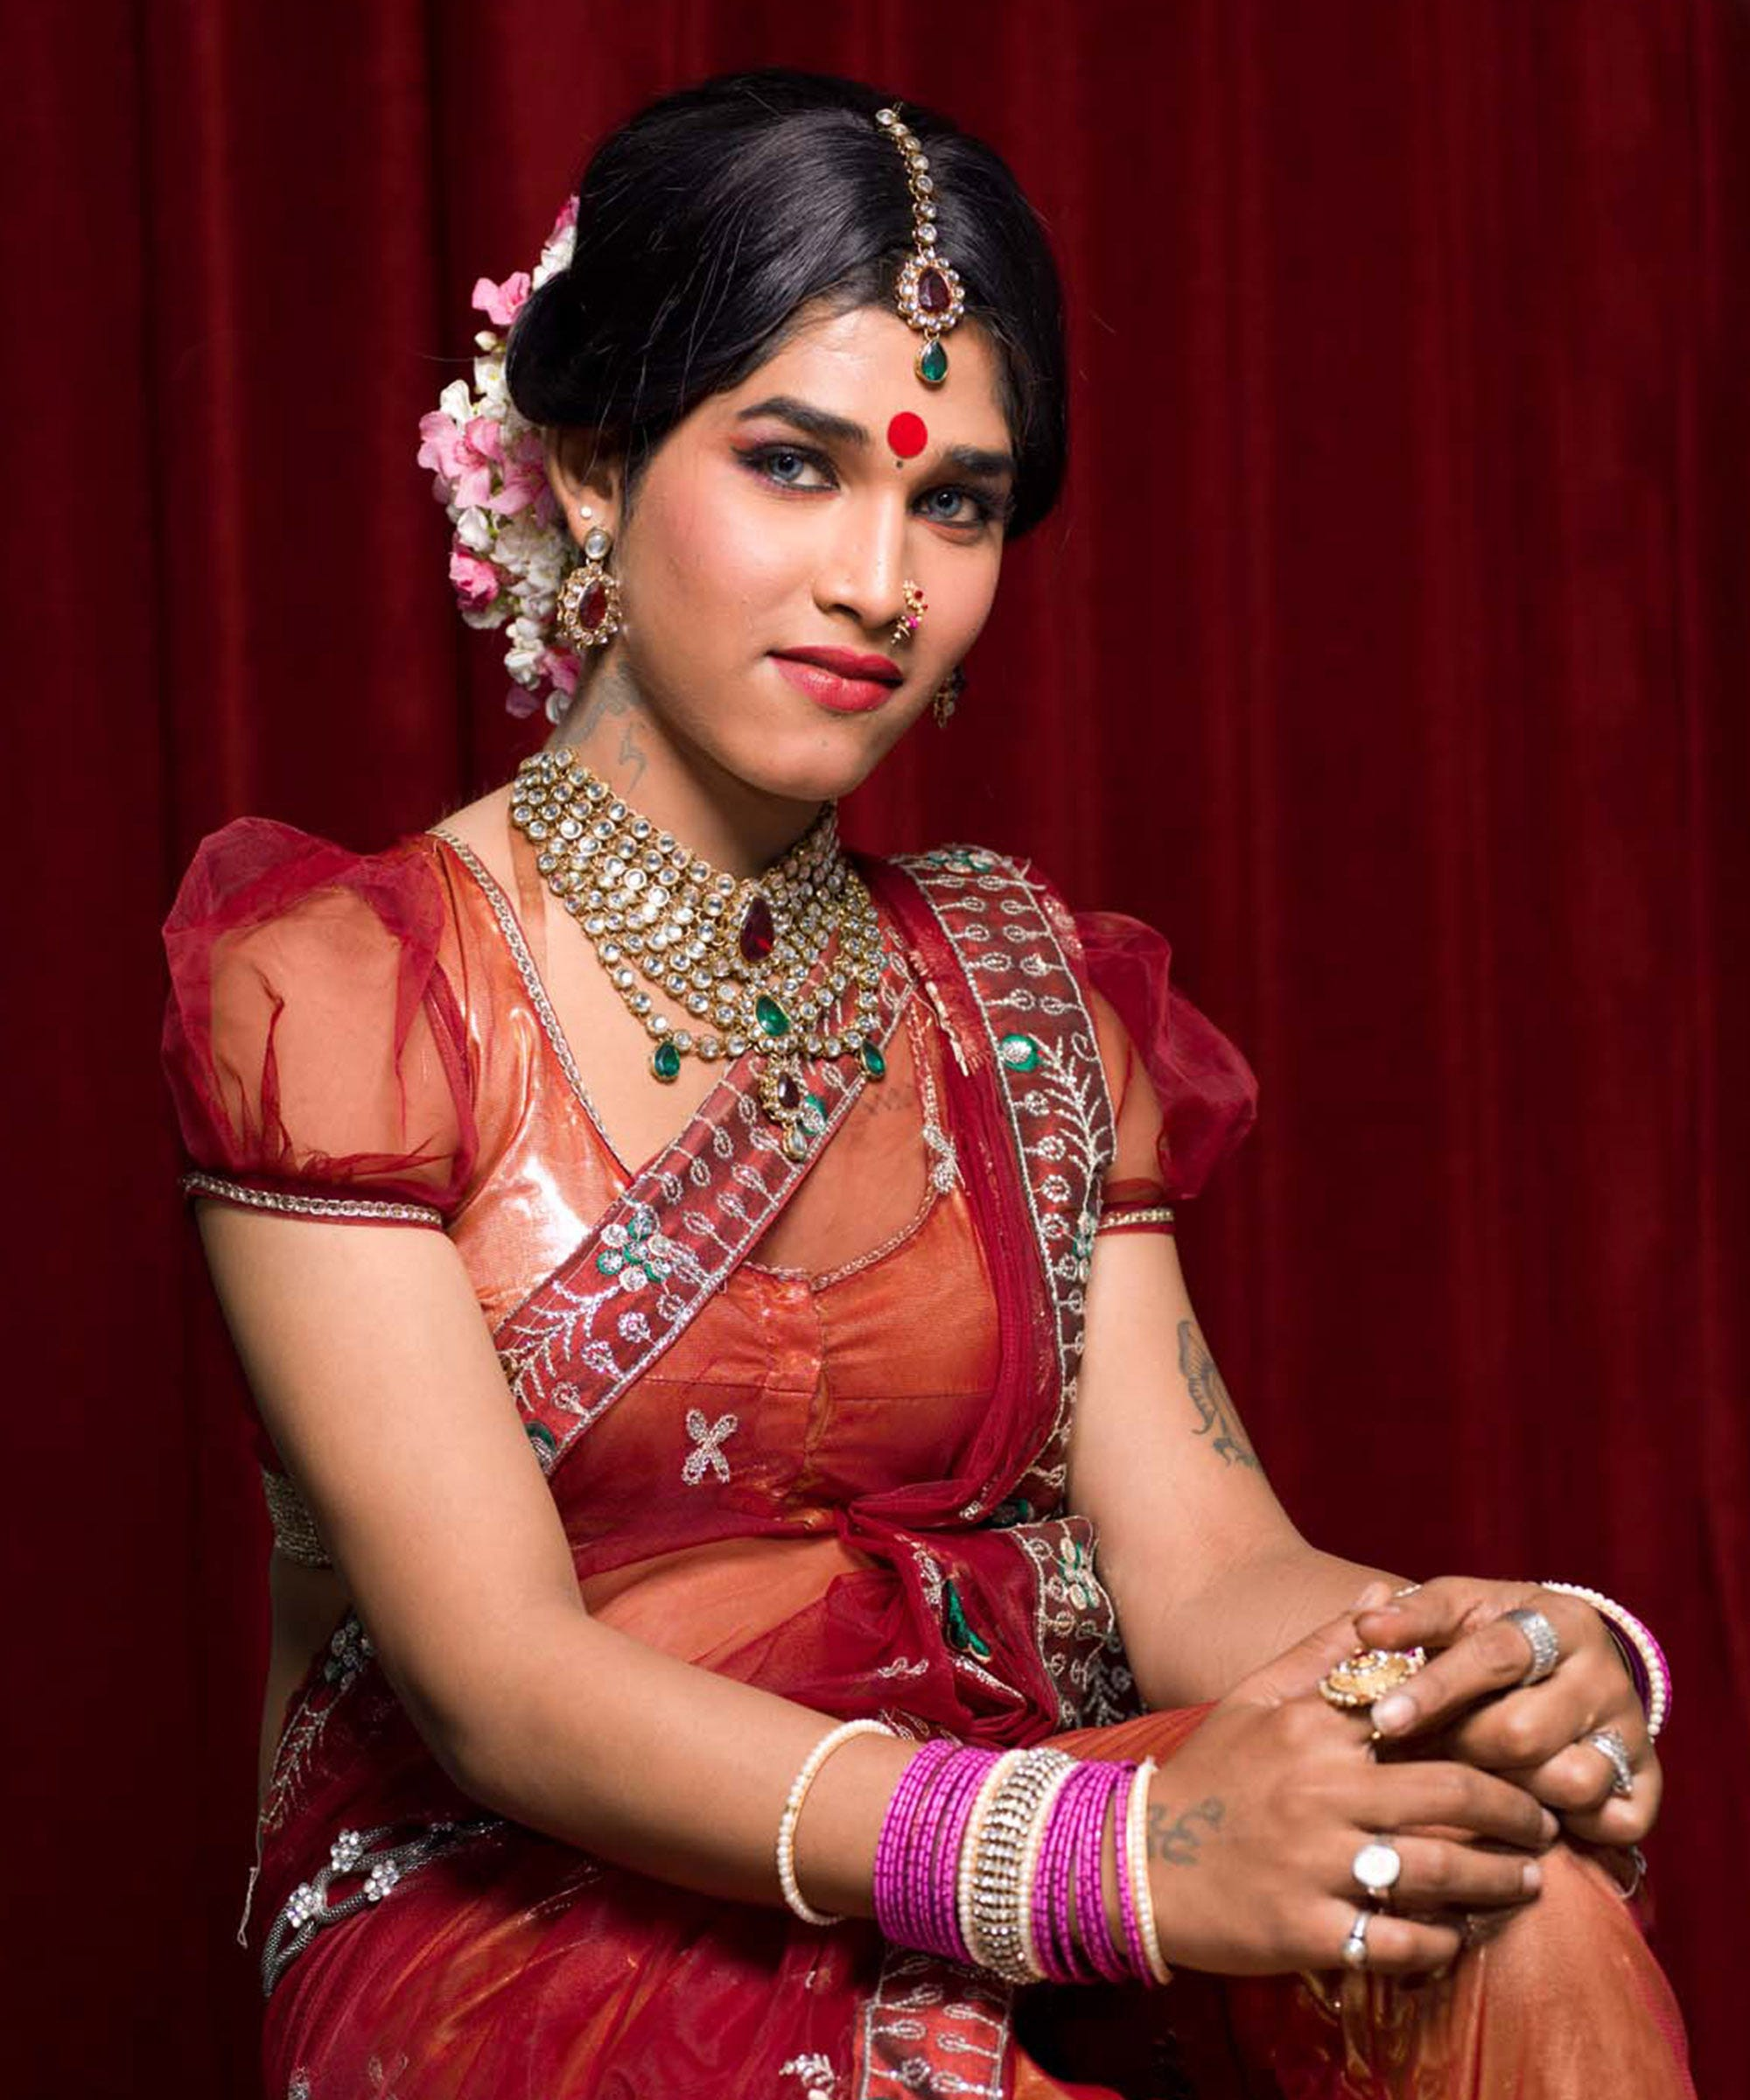 third gender hijras in photos